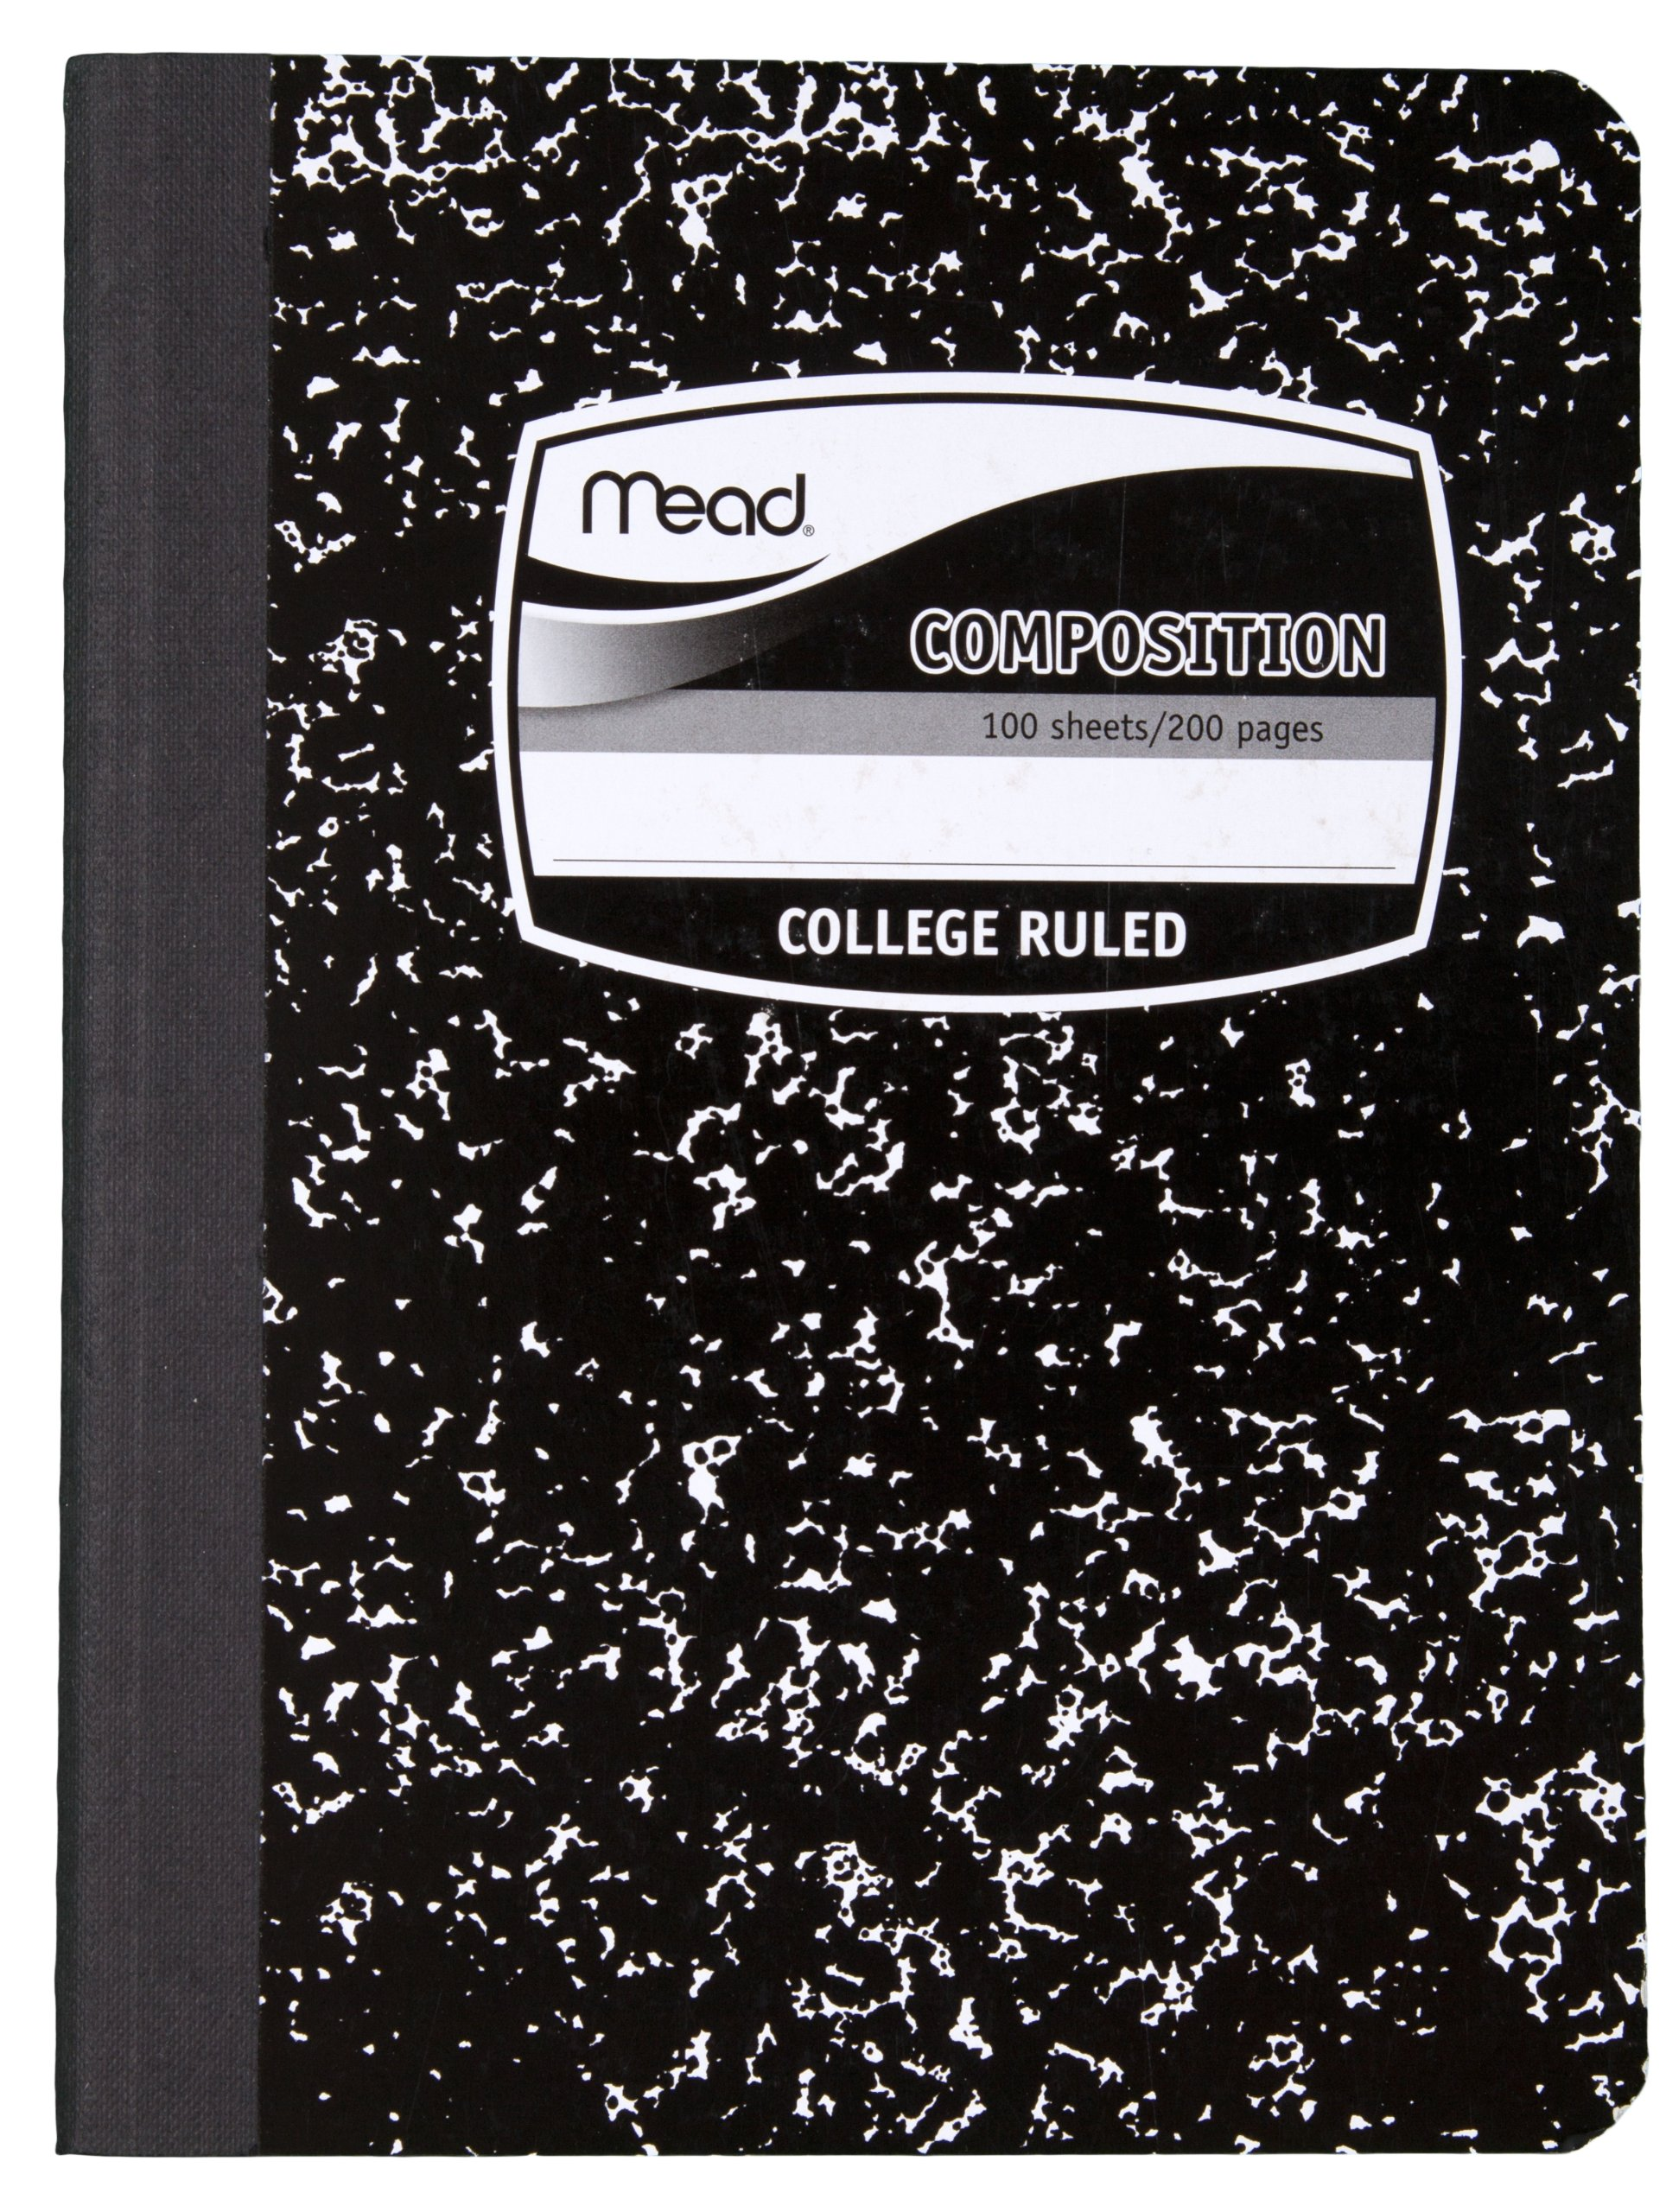 Mead Composition Books/Notebooks, College Ruled Paper, 100 Sheets, 12 Pack (72938)